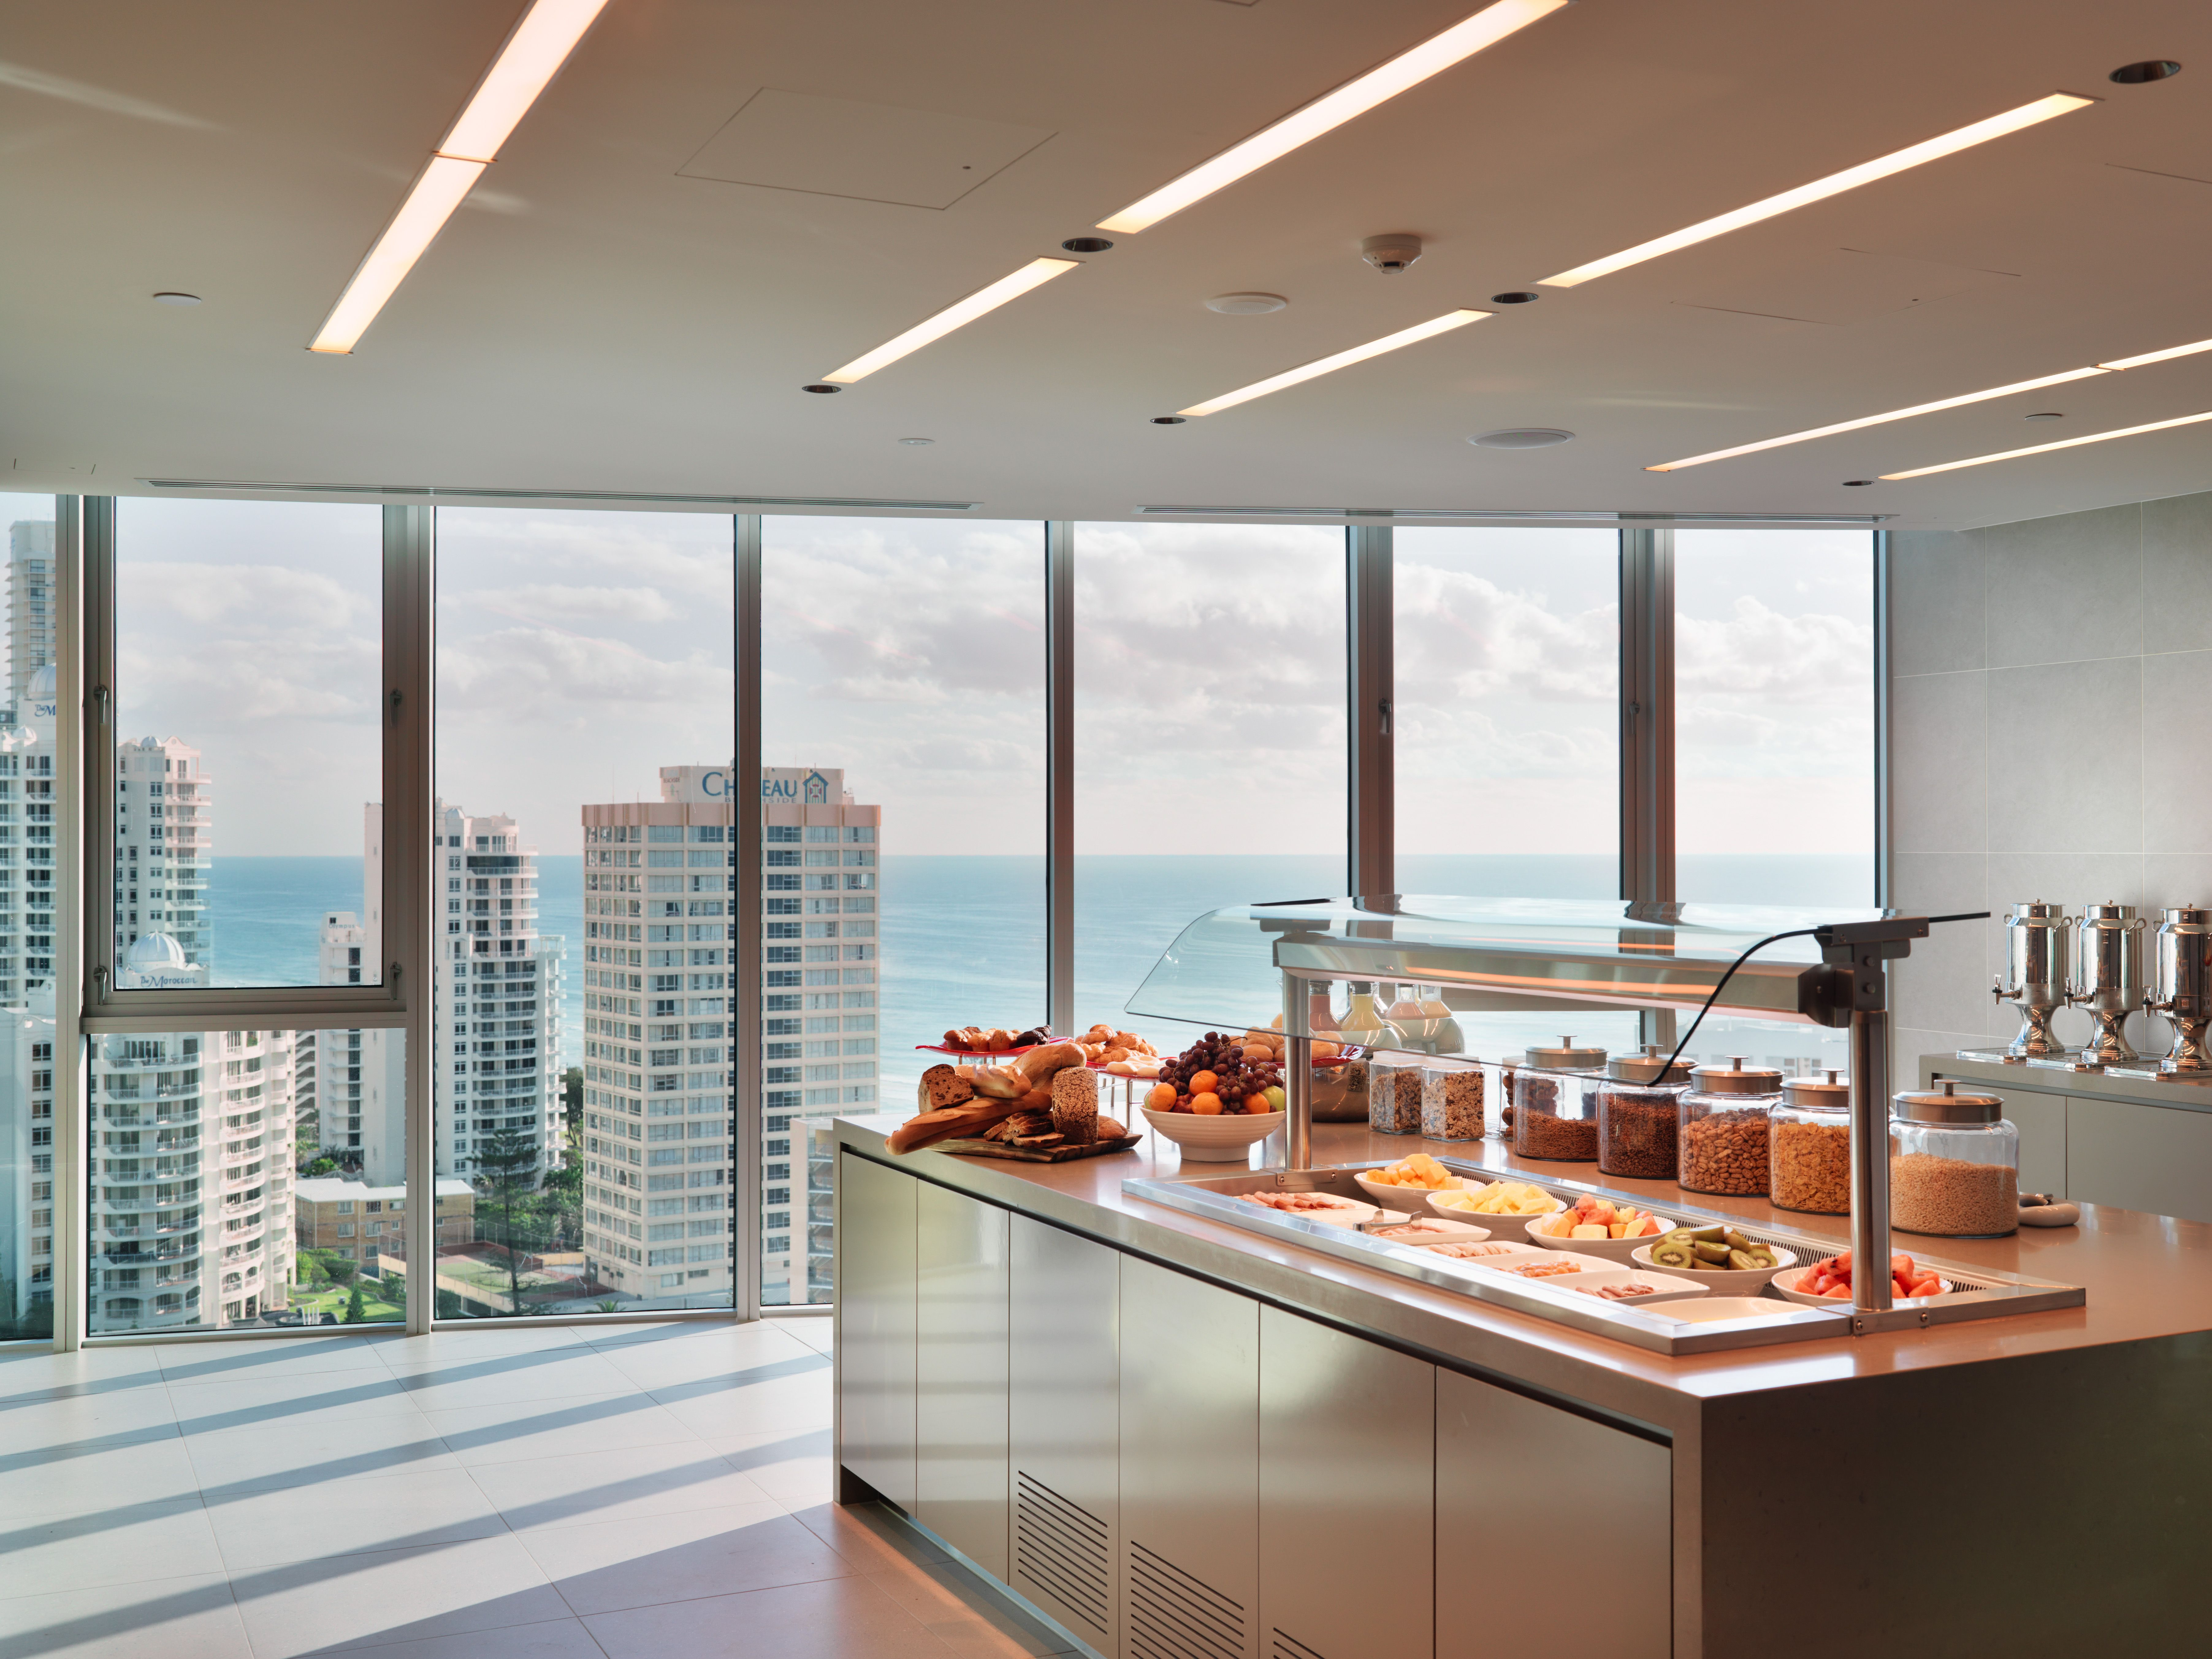 Breakfast In The Executive Lounge At The Hilton Surfers Paradise Hotel Residences Paradise Hotel Surfers Paradise Hotel